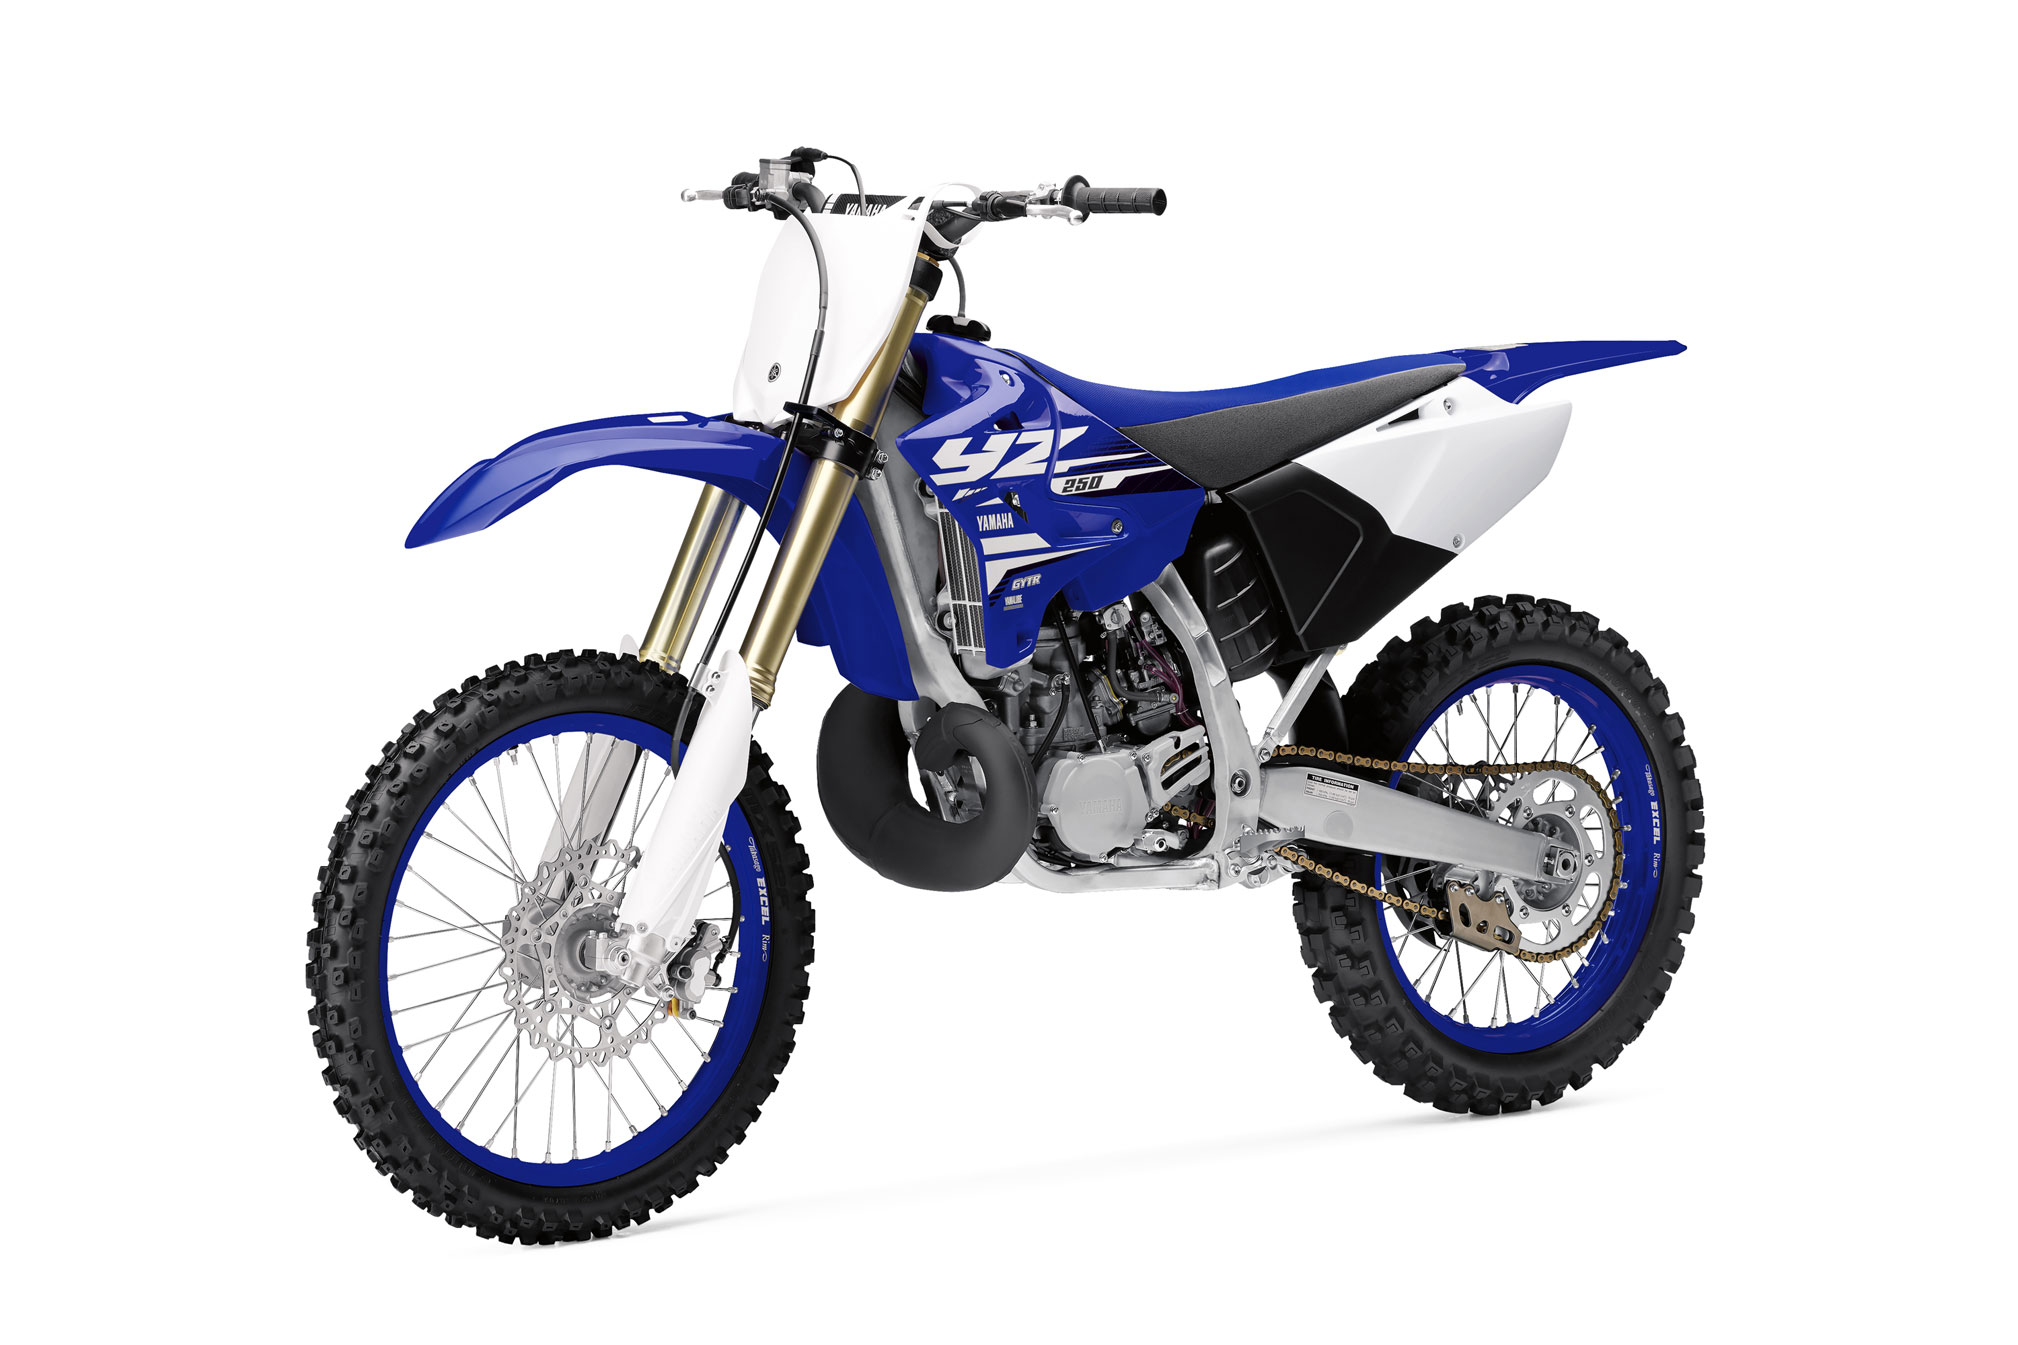 2018 yamaha yz250 review totalmotorcycle for Yz yamaha 250